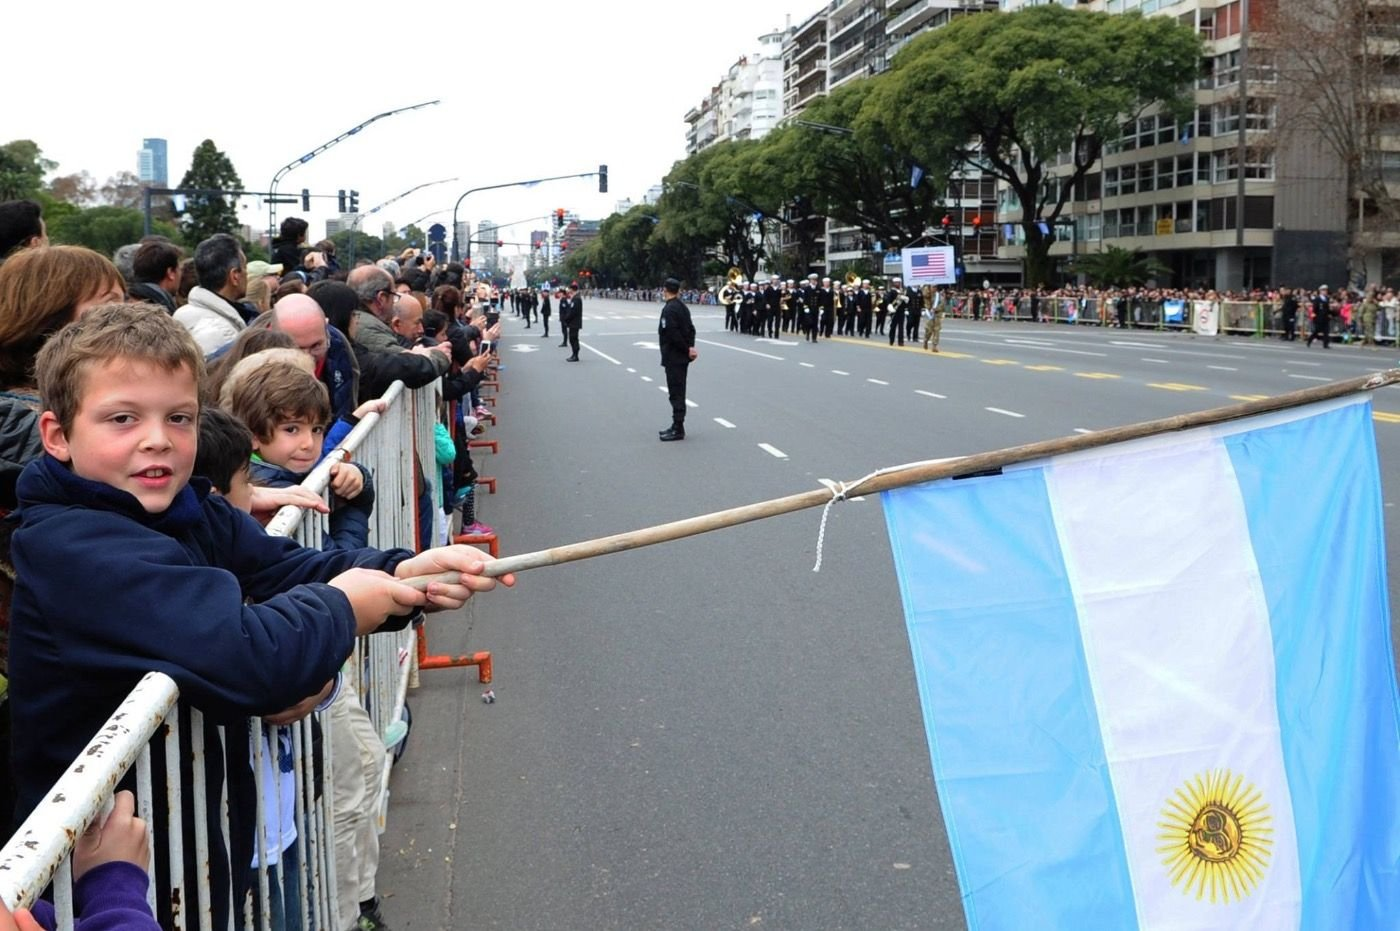 U.S.Fleet Forces BandPerforms in 200th Anniversary of Argentine Independence Parade